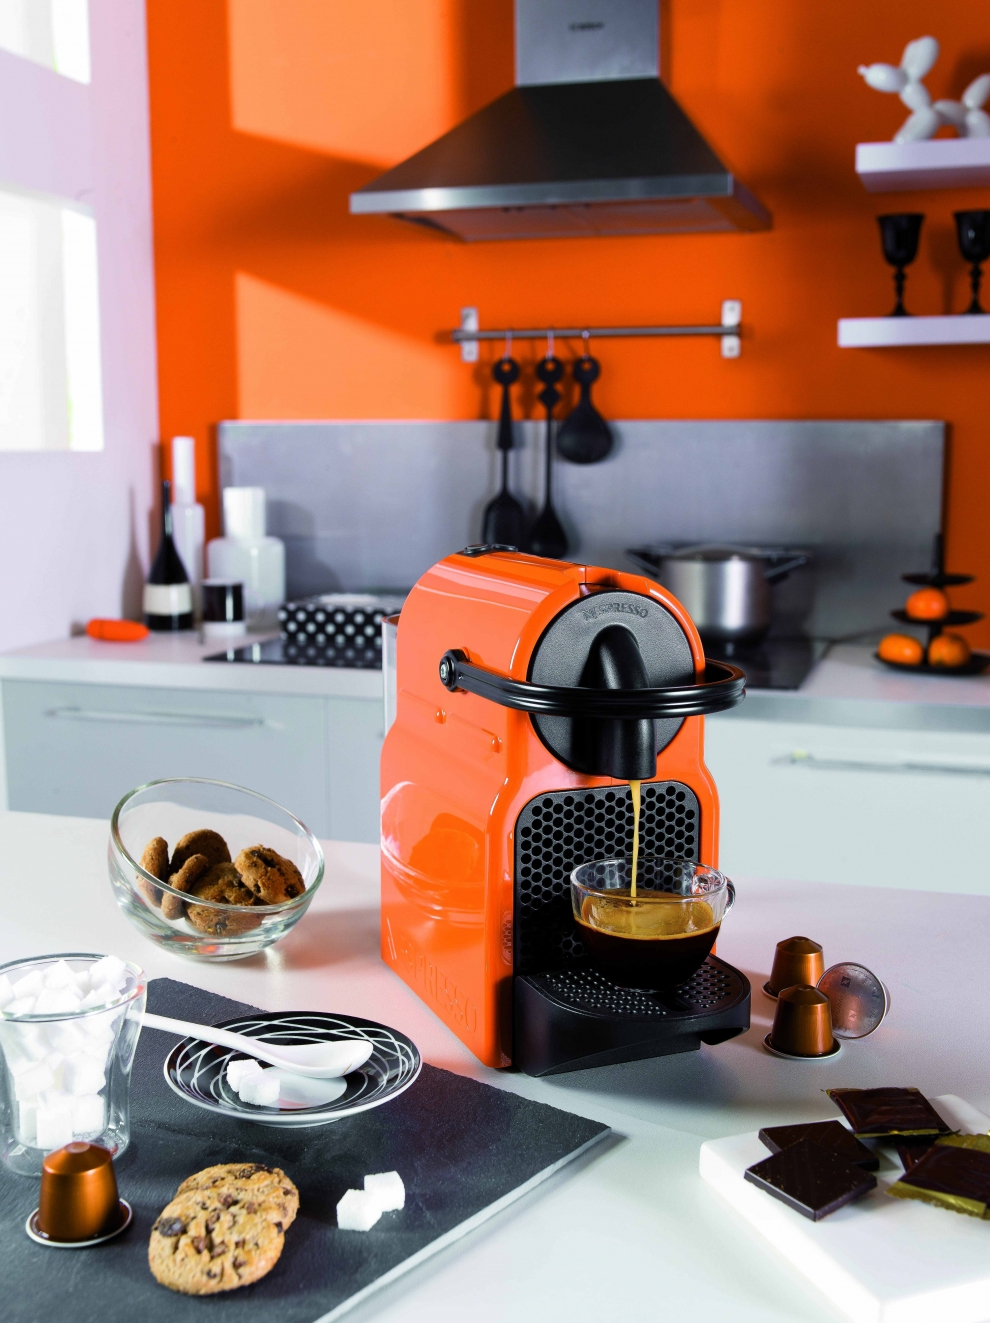 magimix nespresso m130 inissia orange magimix 11352 11352 achetez au meilleur prix chez. Black Bedroom Furniture Sets. Home Design Ideas